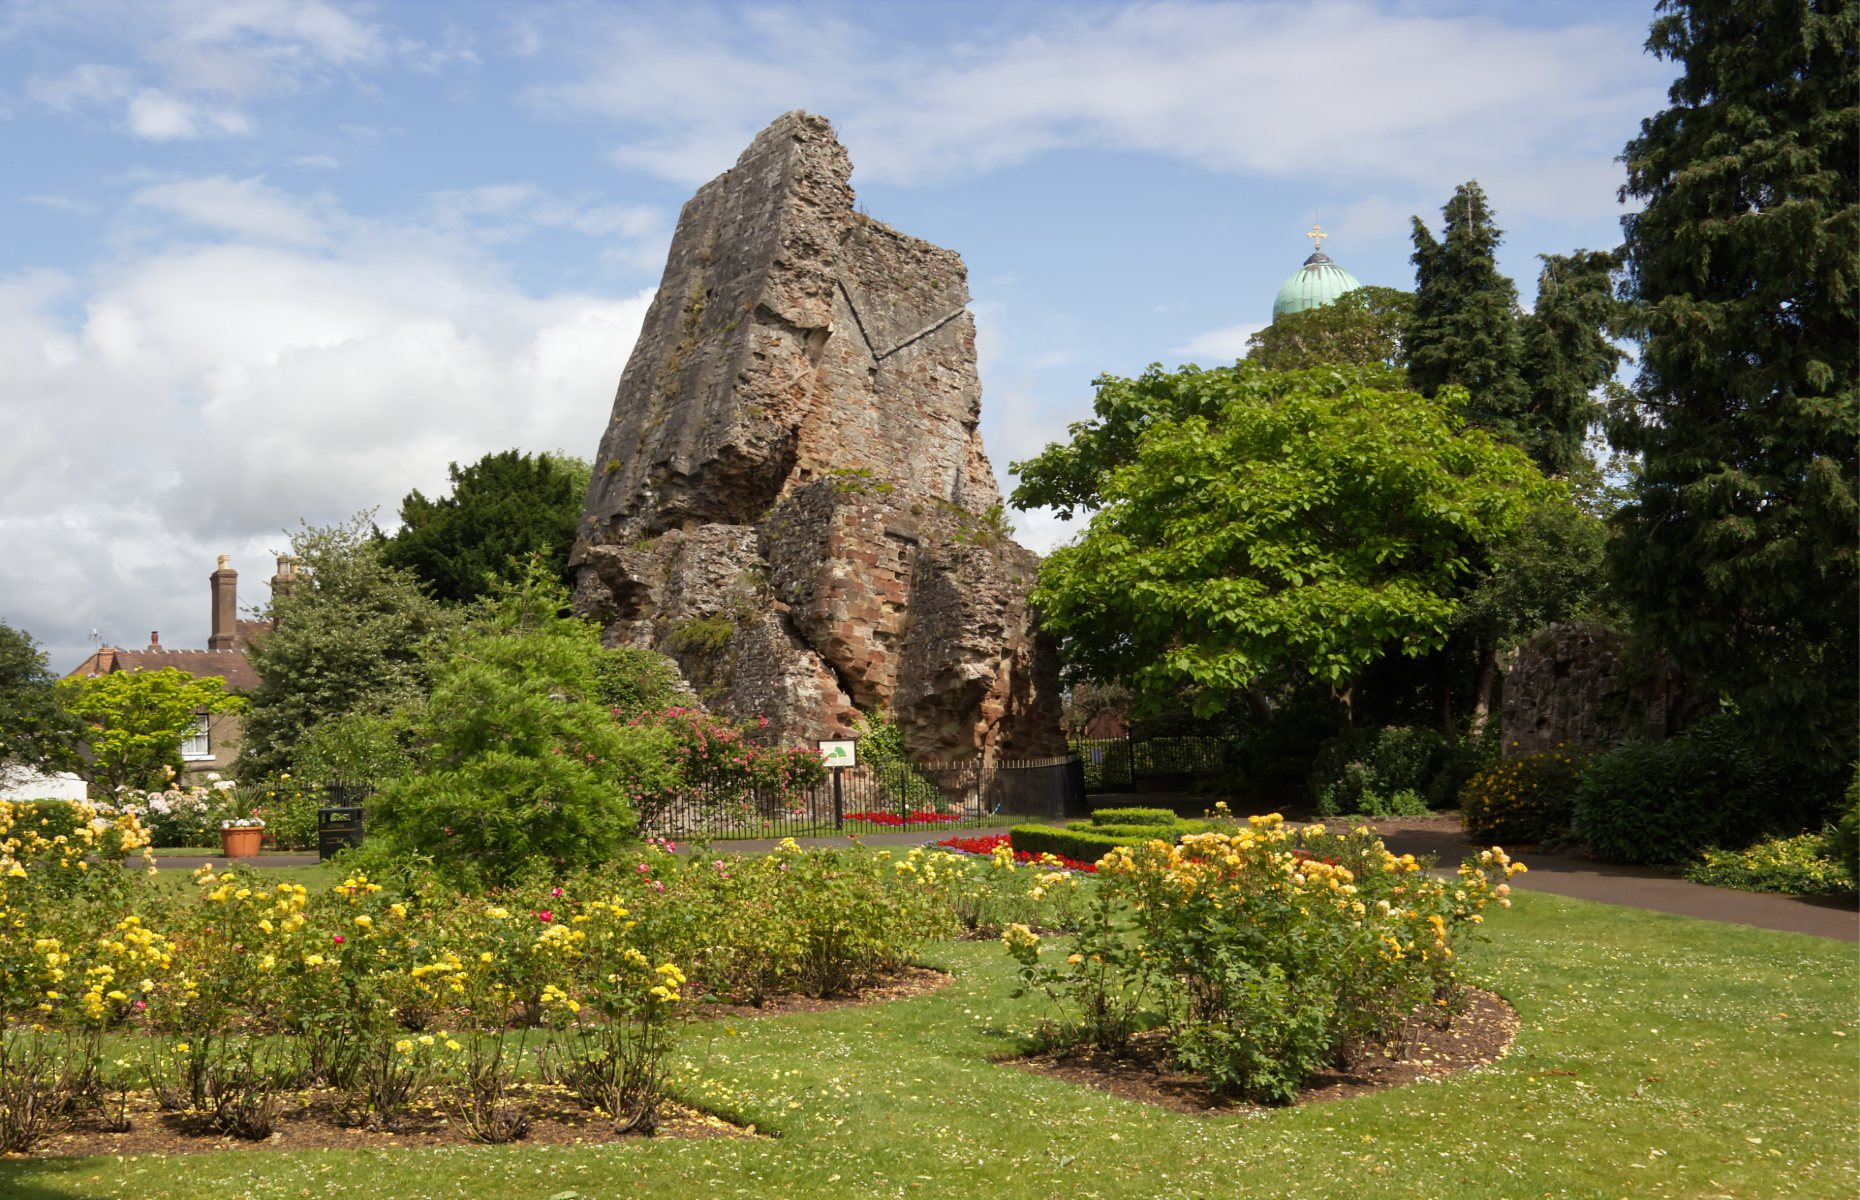 The ruins of Bridgnorth Castle leaning (Image: Ruth Ashmore/Shutterstock)